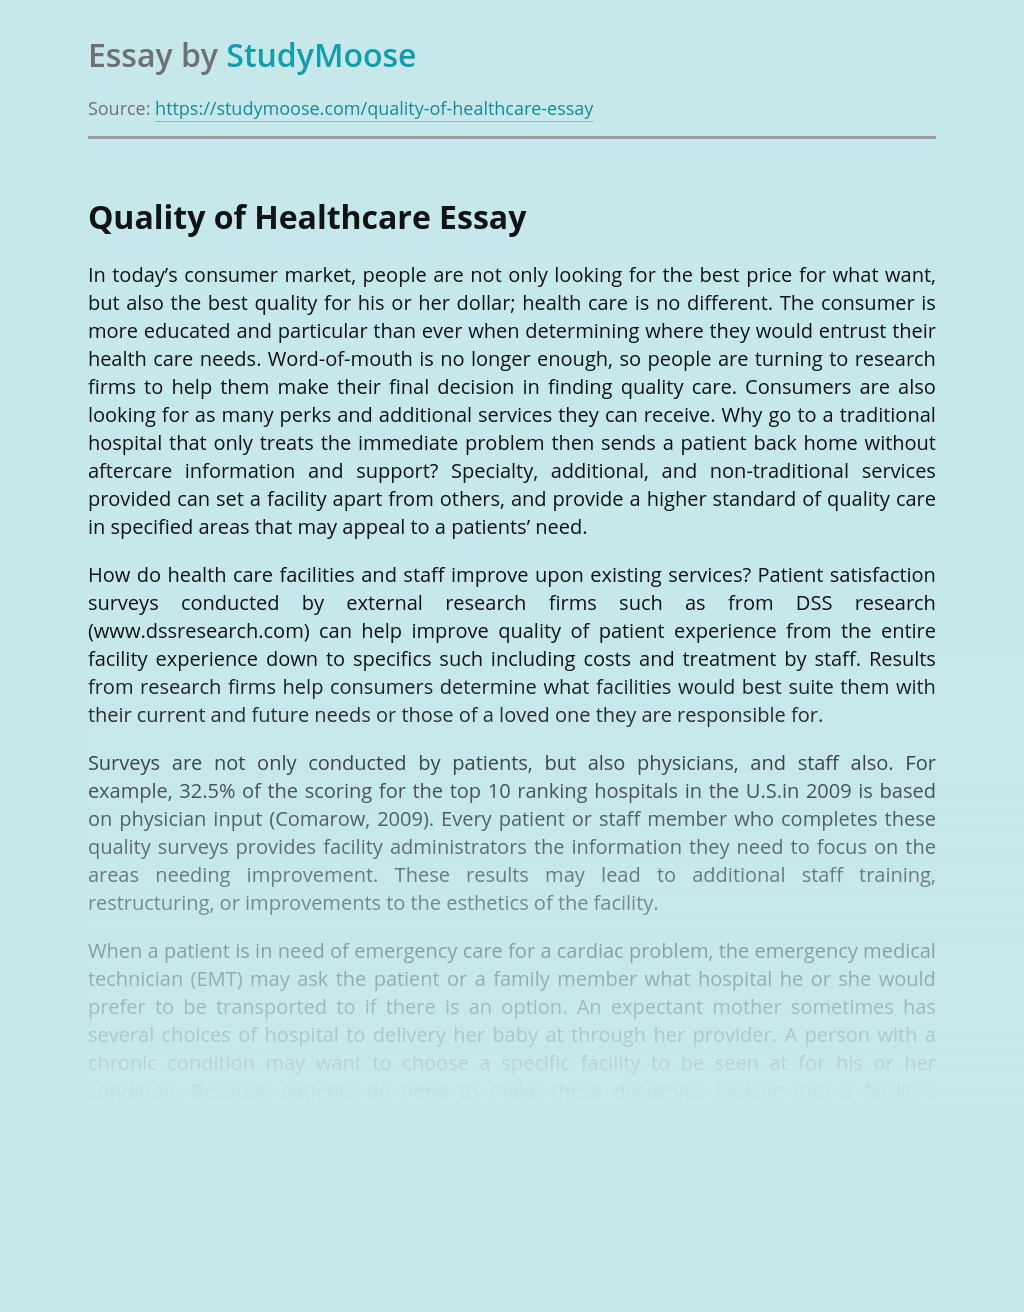 Quality of Healthcare